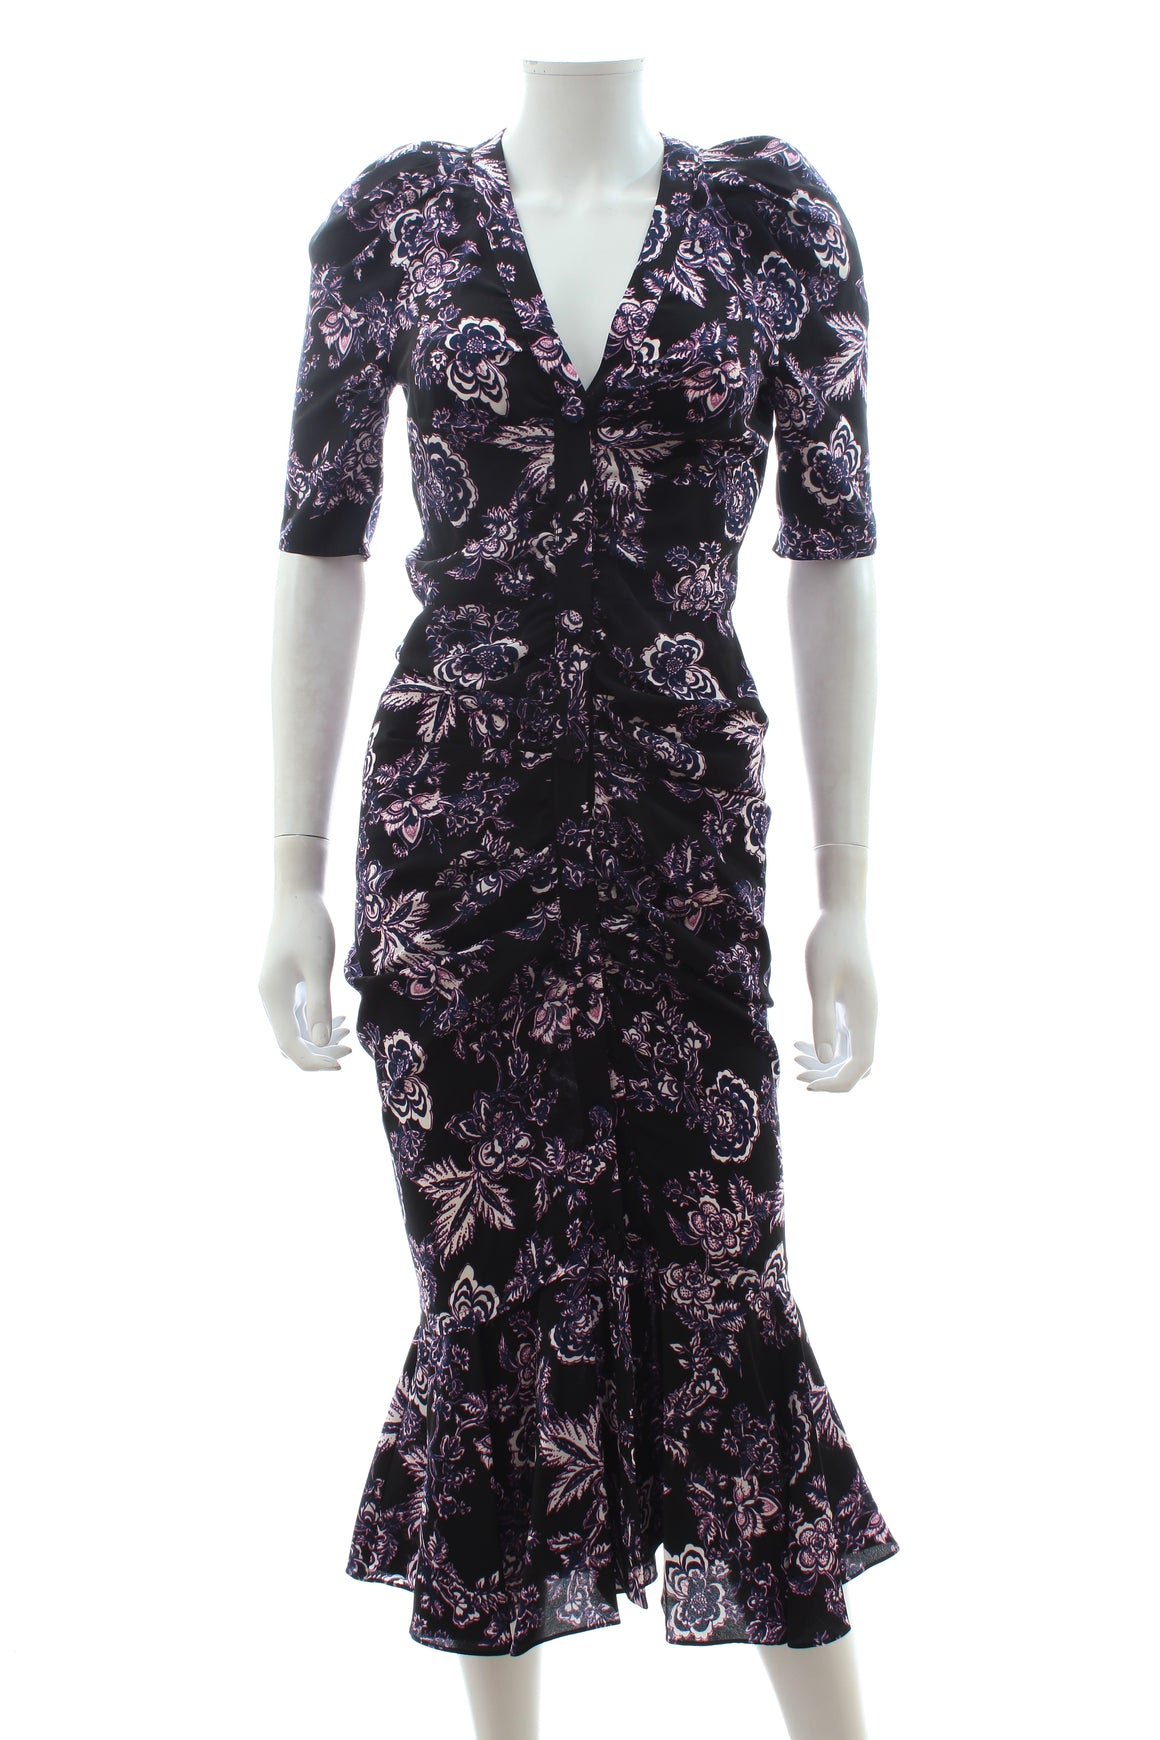 Veronica Beard 'Kent' Floral Print Ruched Silk Dress